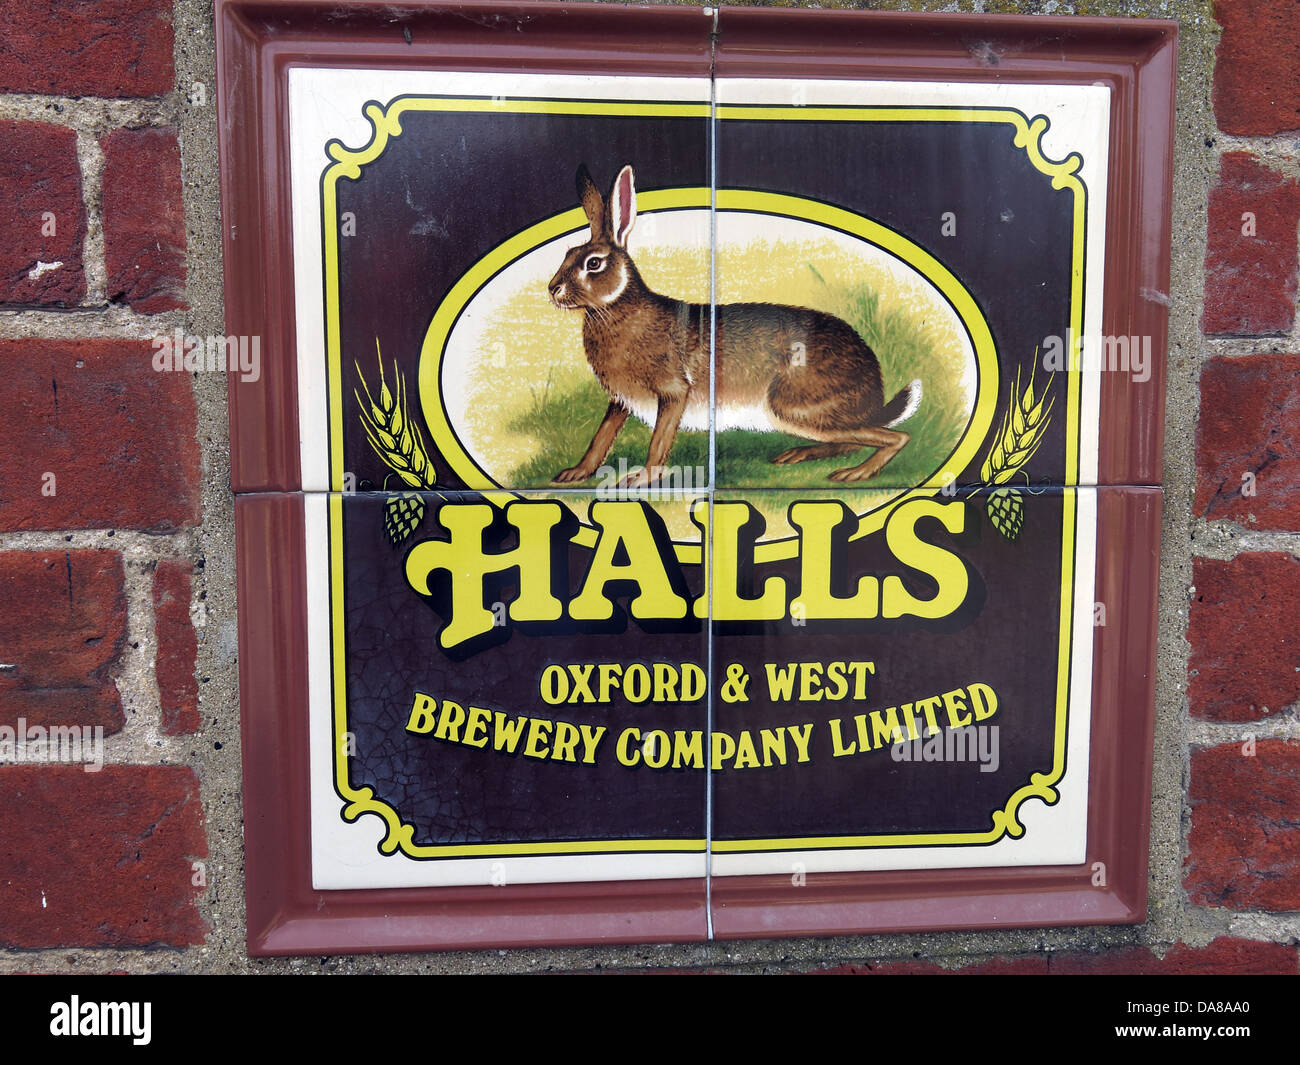 halls,and,brewing,company,limited,hare,brown,yellow,log,Dorchester,on,Thames,in,a,wall,mounted,name,adopted,by,Allied,Breweries,Great,Britain,British,beer,ale,animal,rabbit,Square,ceramic,plaque,made,up,of,four,tiles,illustration,of,a,hare,and,4,Abingdon,Bath,Street,st,OX10,7HH,OX107HH,gotonysmith,forgotten,past,old,traditional,english,Camra,real,unique,classic,Oxford&West,oxon,oxfordshire,county,country,registered,office,in,Staffordshire,southern,england,english,attractive,logo,trademark,trade,mark,Jubilee,House,Second,Avenue,Burton,Upon,Trent,DE14,2WF,Burton-Upon-Trent,DE142WF,high,st,street,Buy Pictures of,Buy Images Of